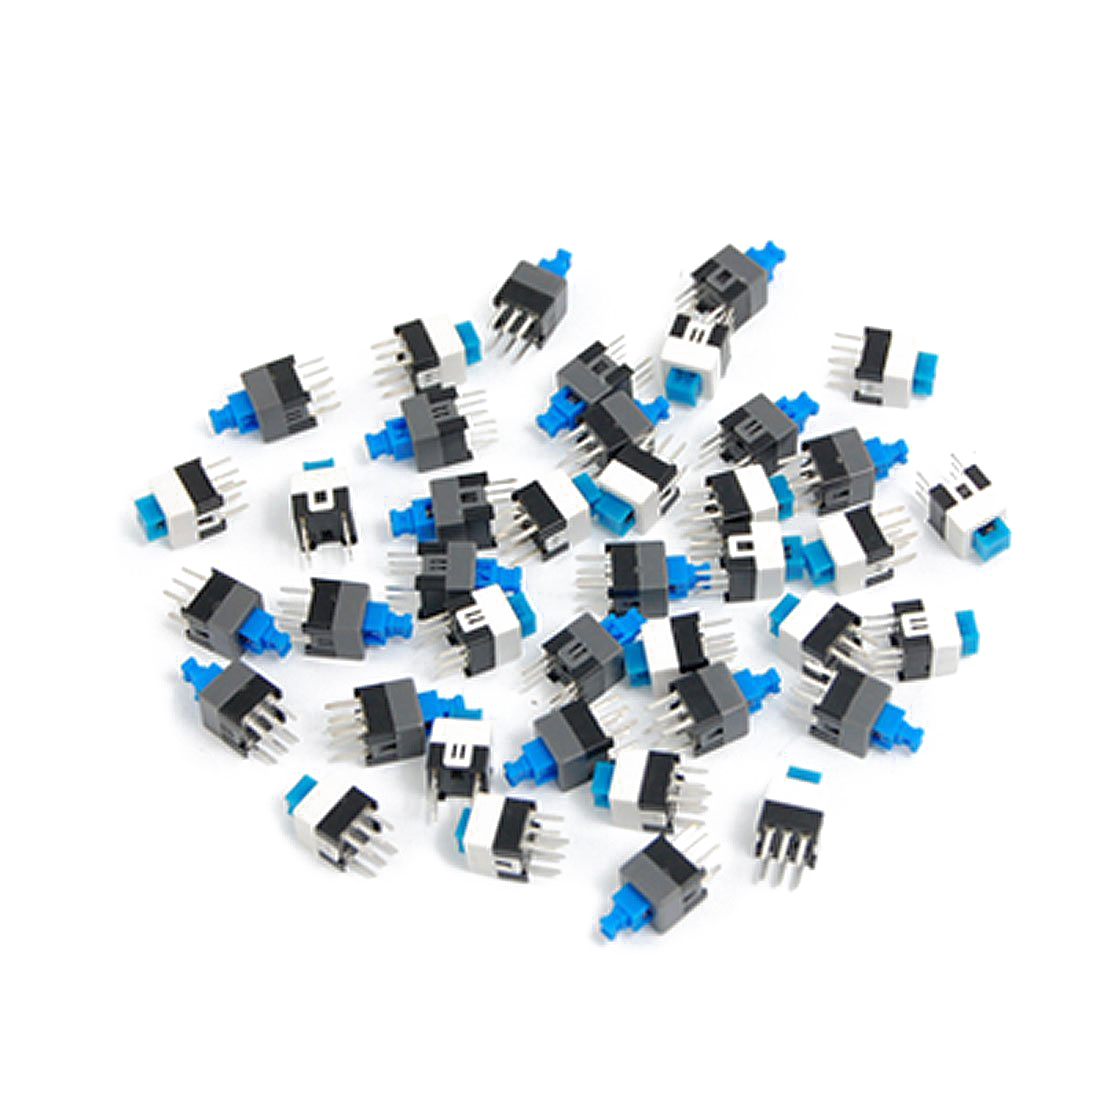 Promotion! 40 Pcs 7 x 7mm PCB Tact Tactile Push Button Switch Self Lock 6 Pin DIP стоимость